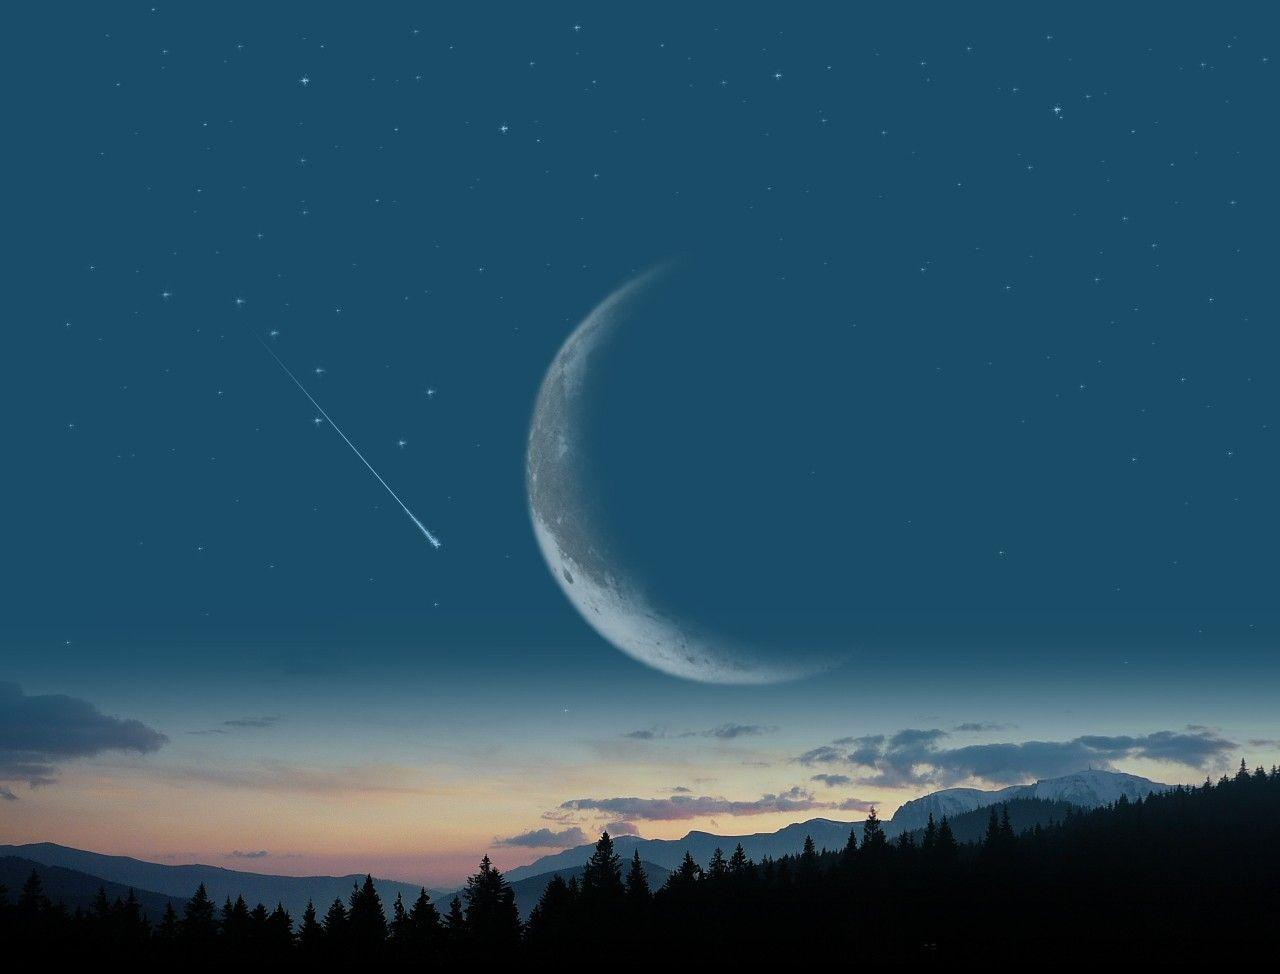 Stars and Moons Desktop Wallpapers - Top Free Stars and Moons ...